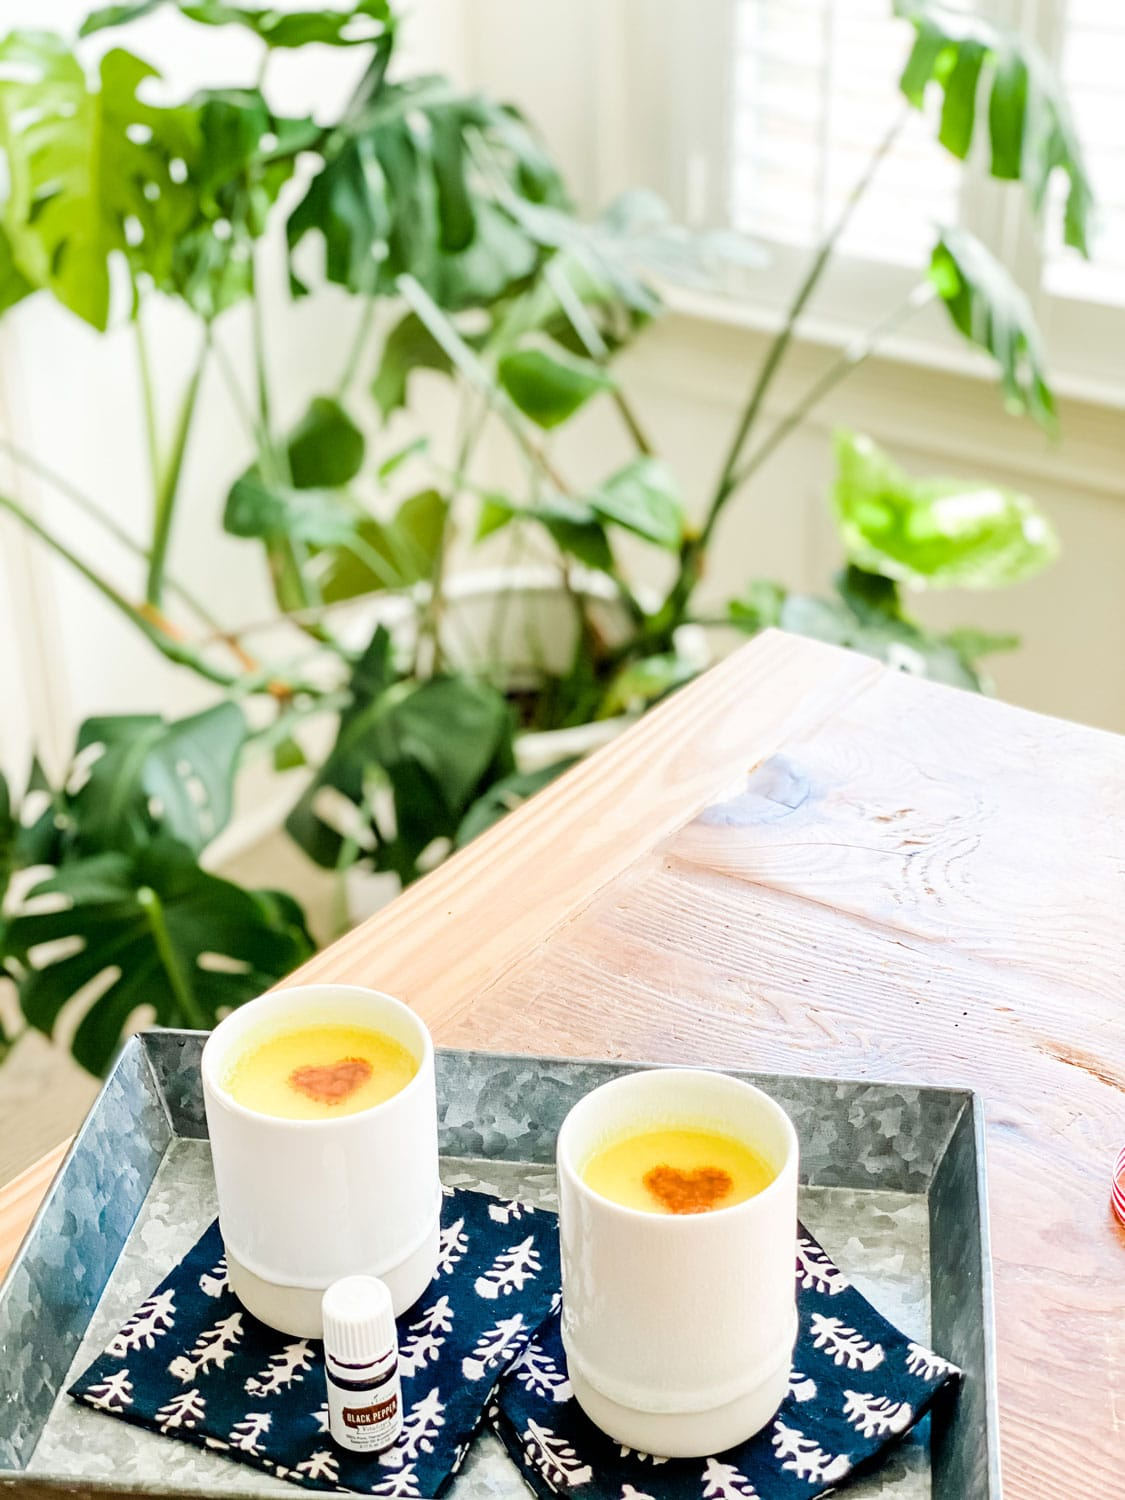 golden milk with turmeric heart on black napkins with plants